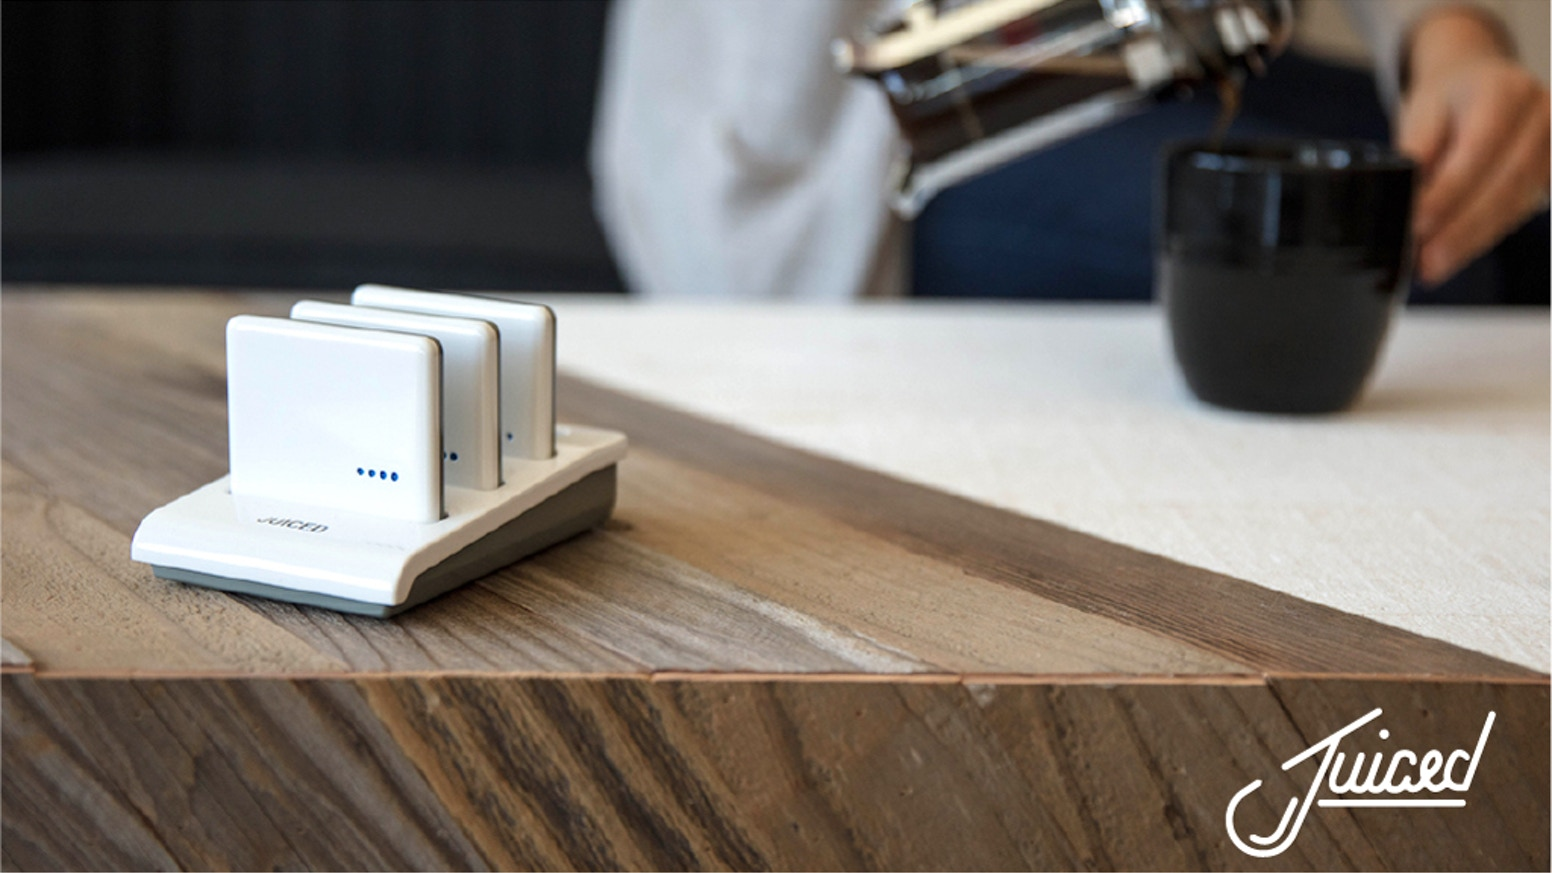 JUICED wireless group charging stations use pocket-sized phone battery packs with an extra 50% boost. Fast, convenient, indispensable.